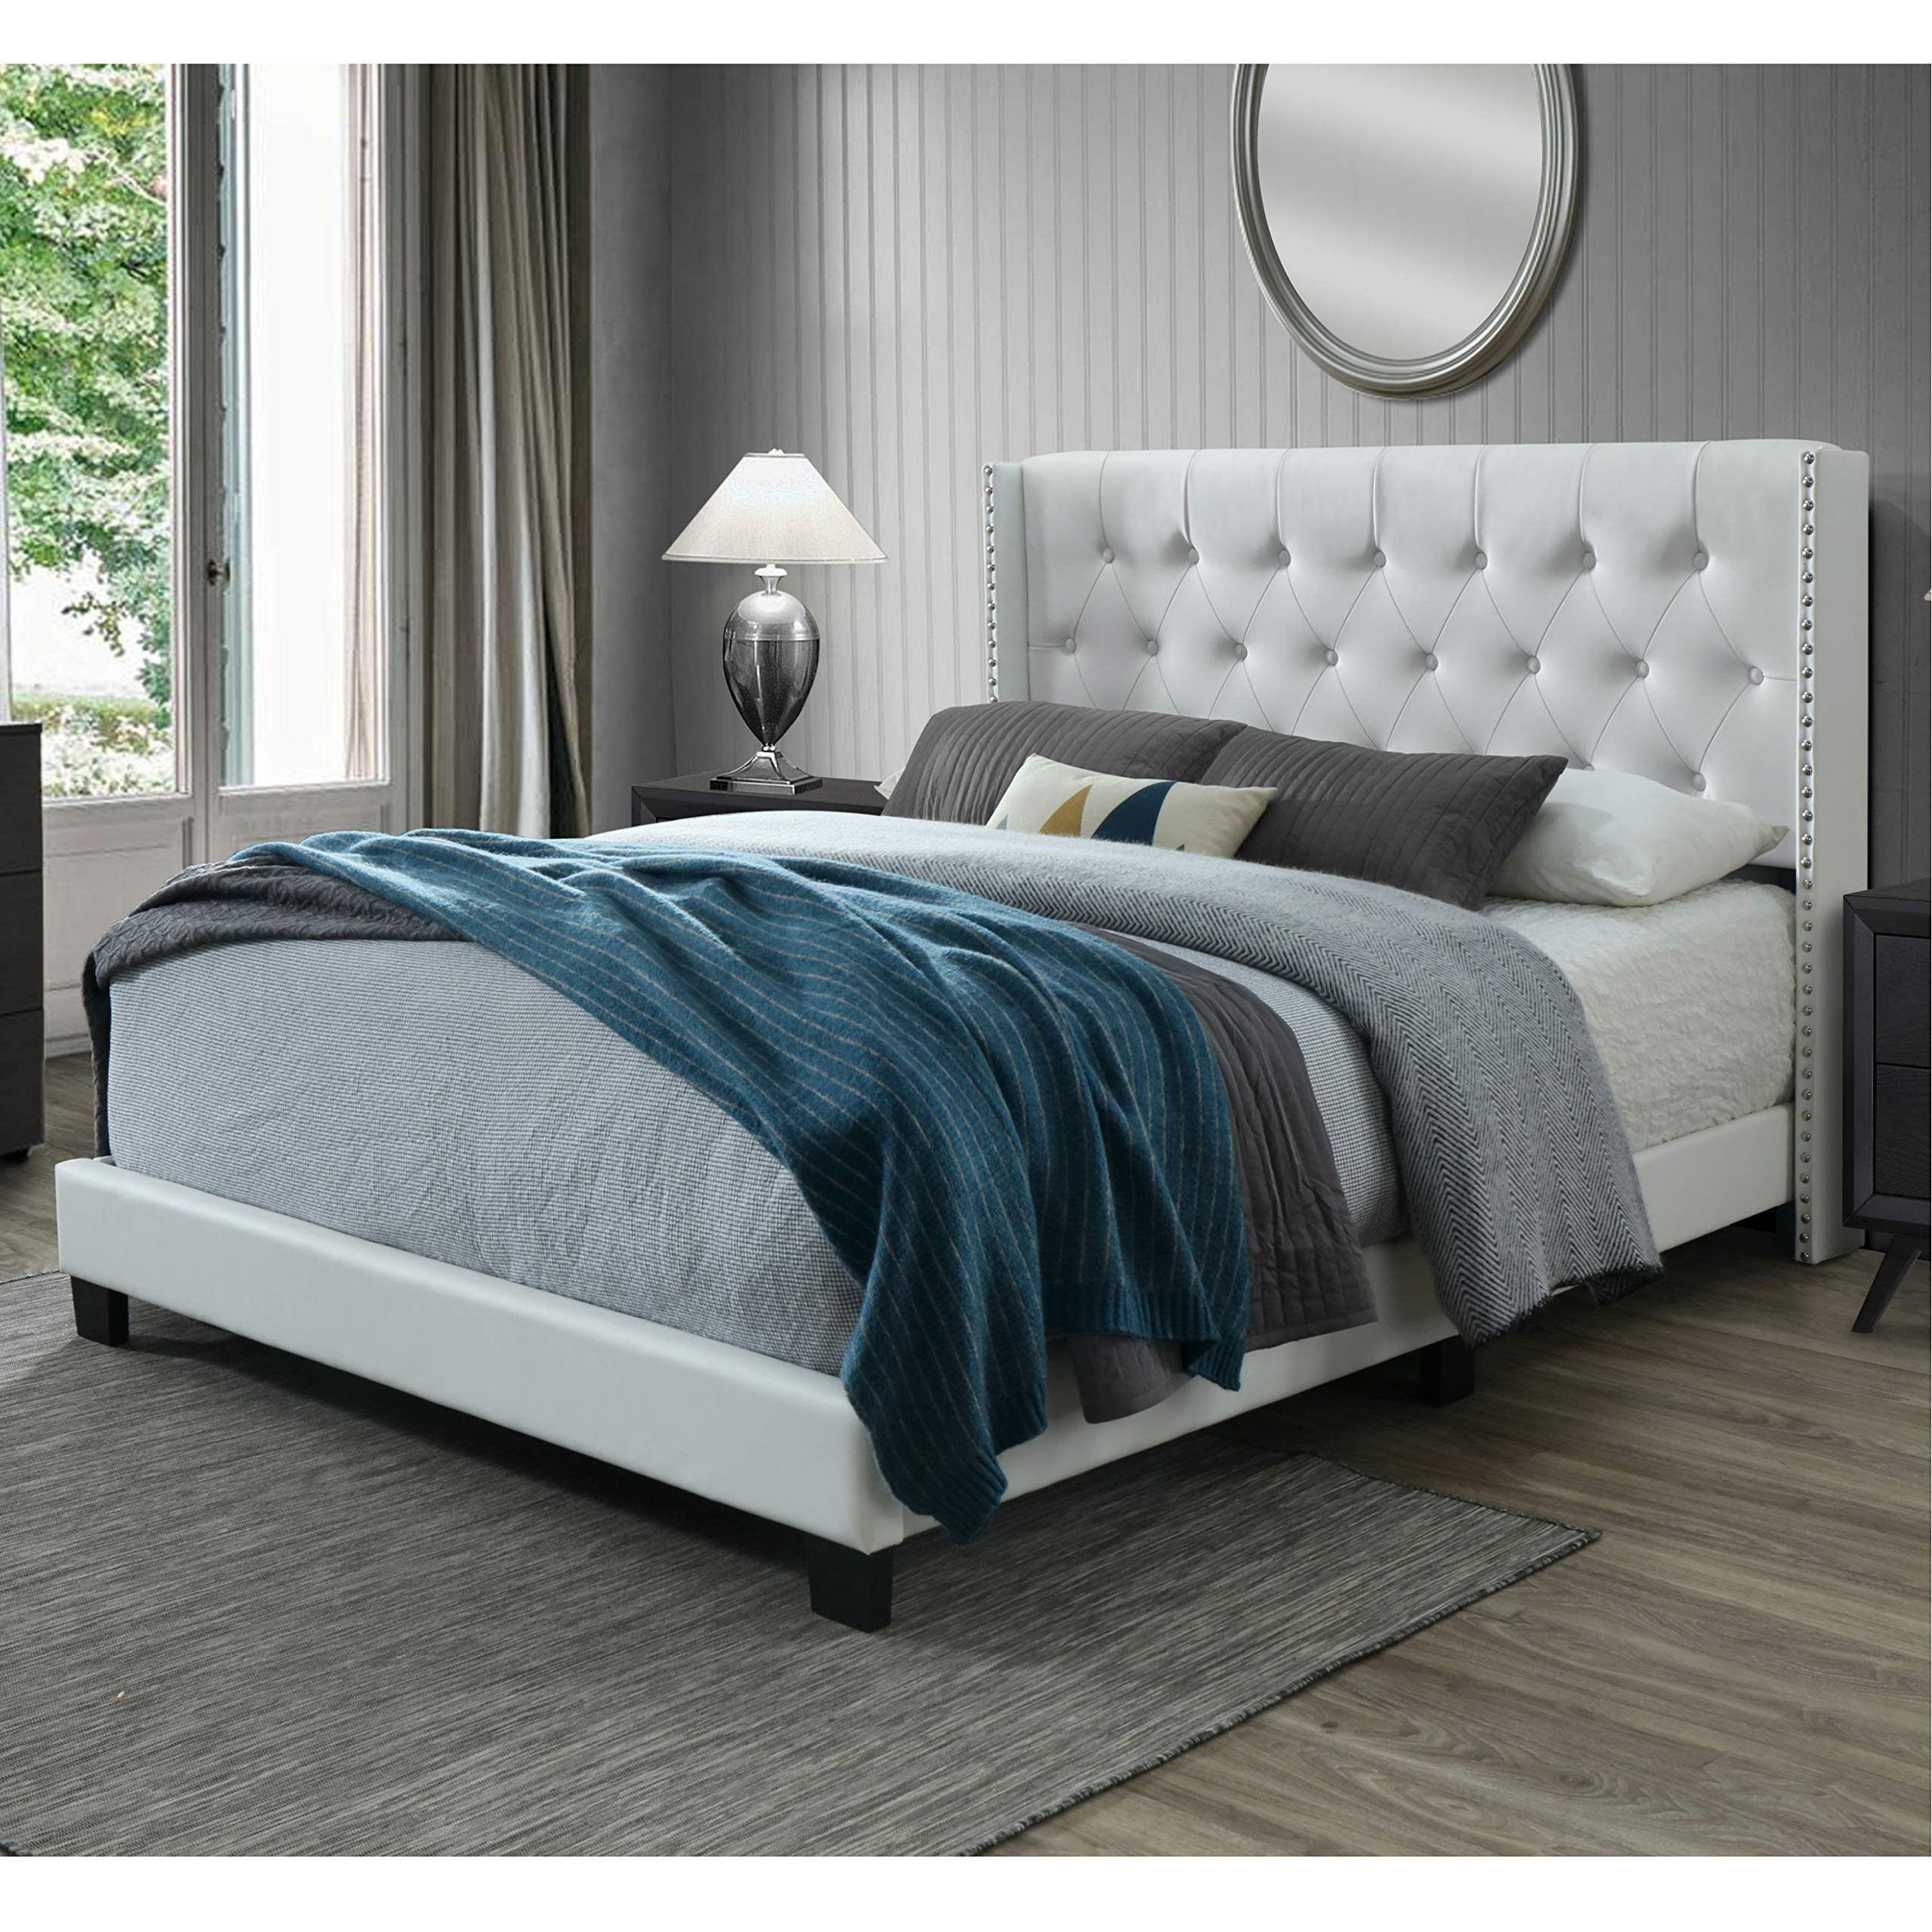 DG Casa 12850-Q-WHT Bardy Diamond Tufted Upholstered Wingback Panel Bed Frame, Queen Size in White Faux Leather by DG Casa